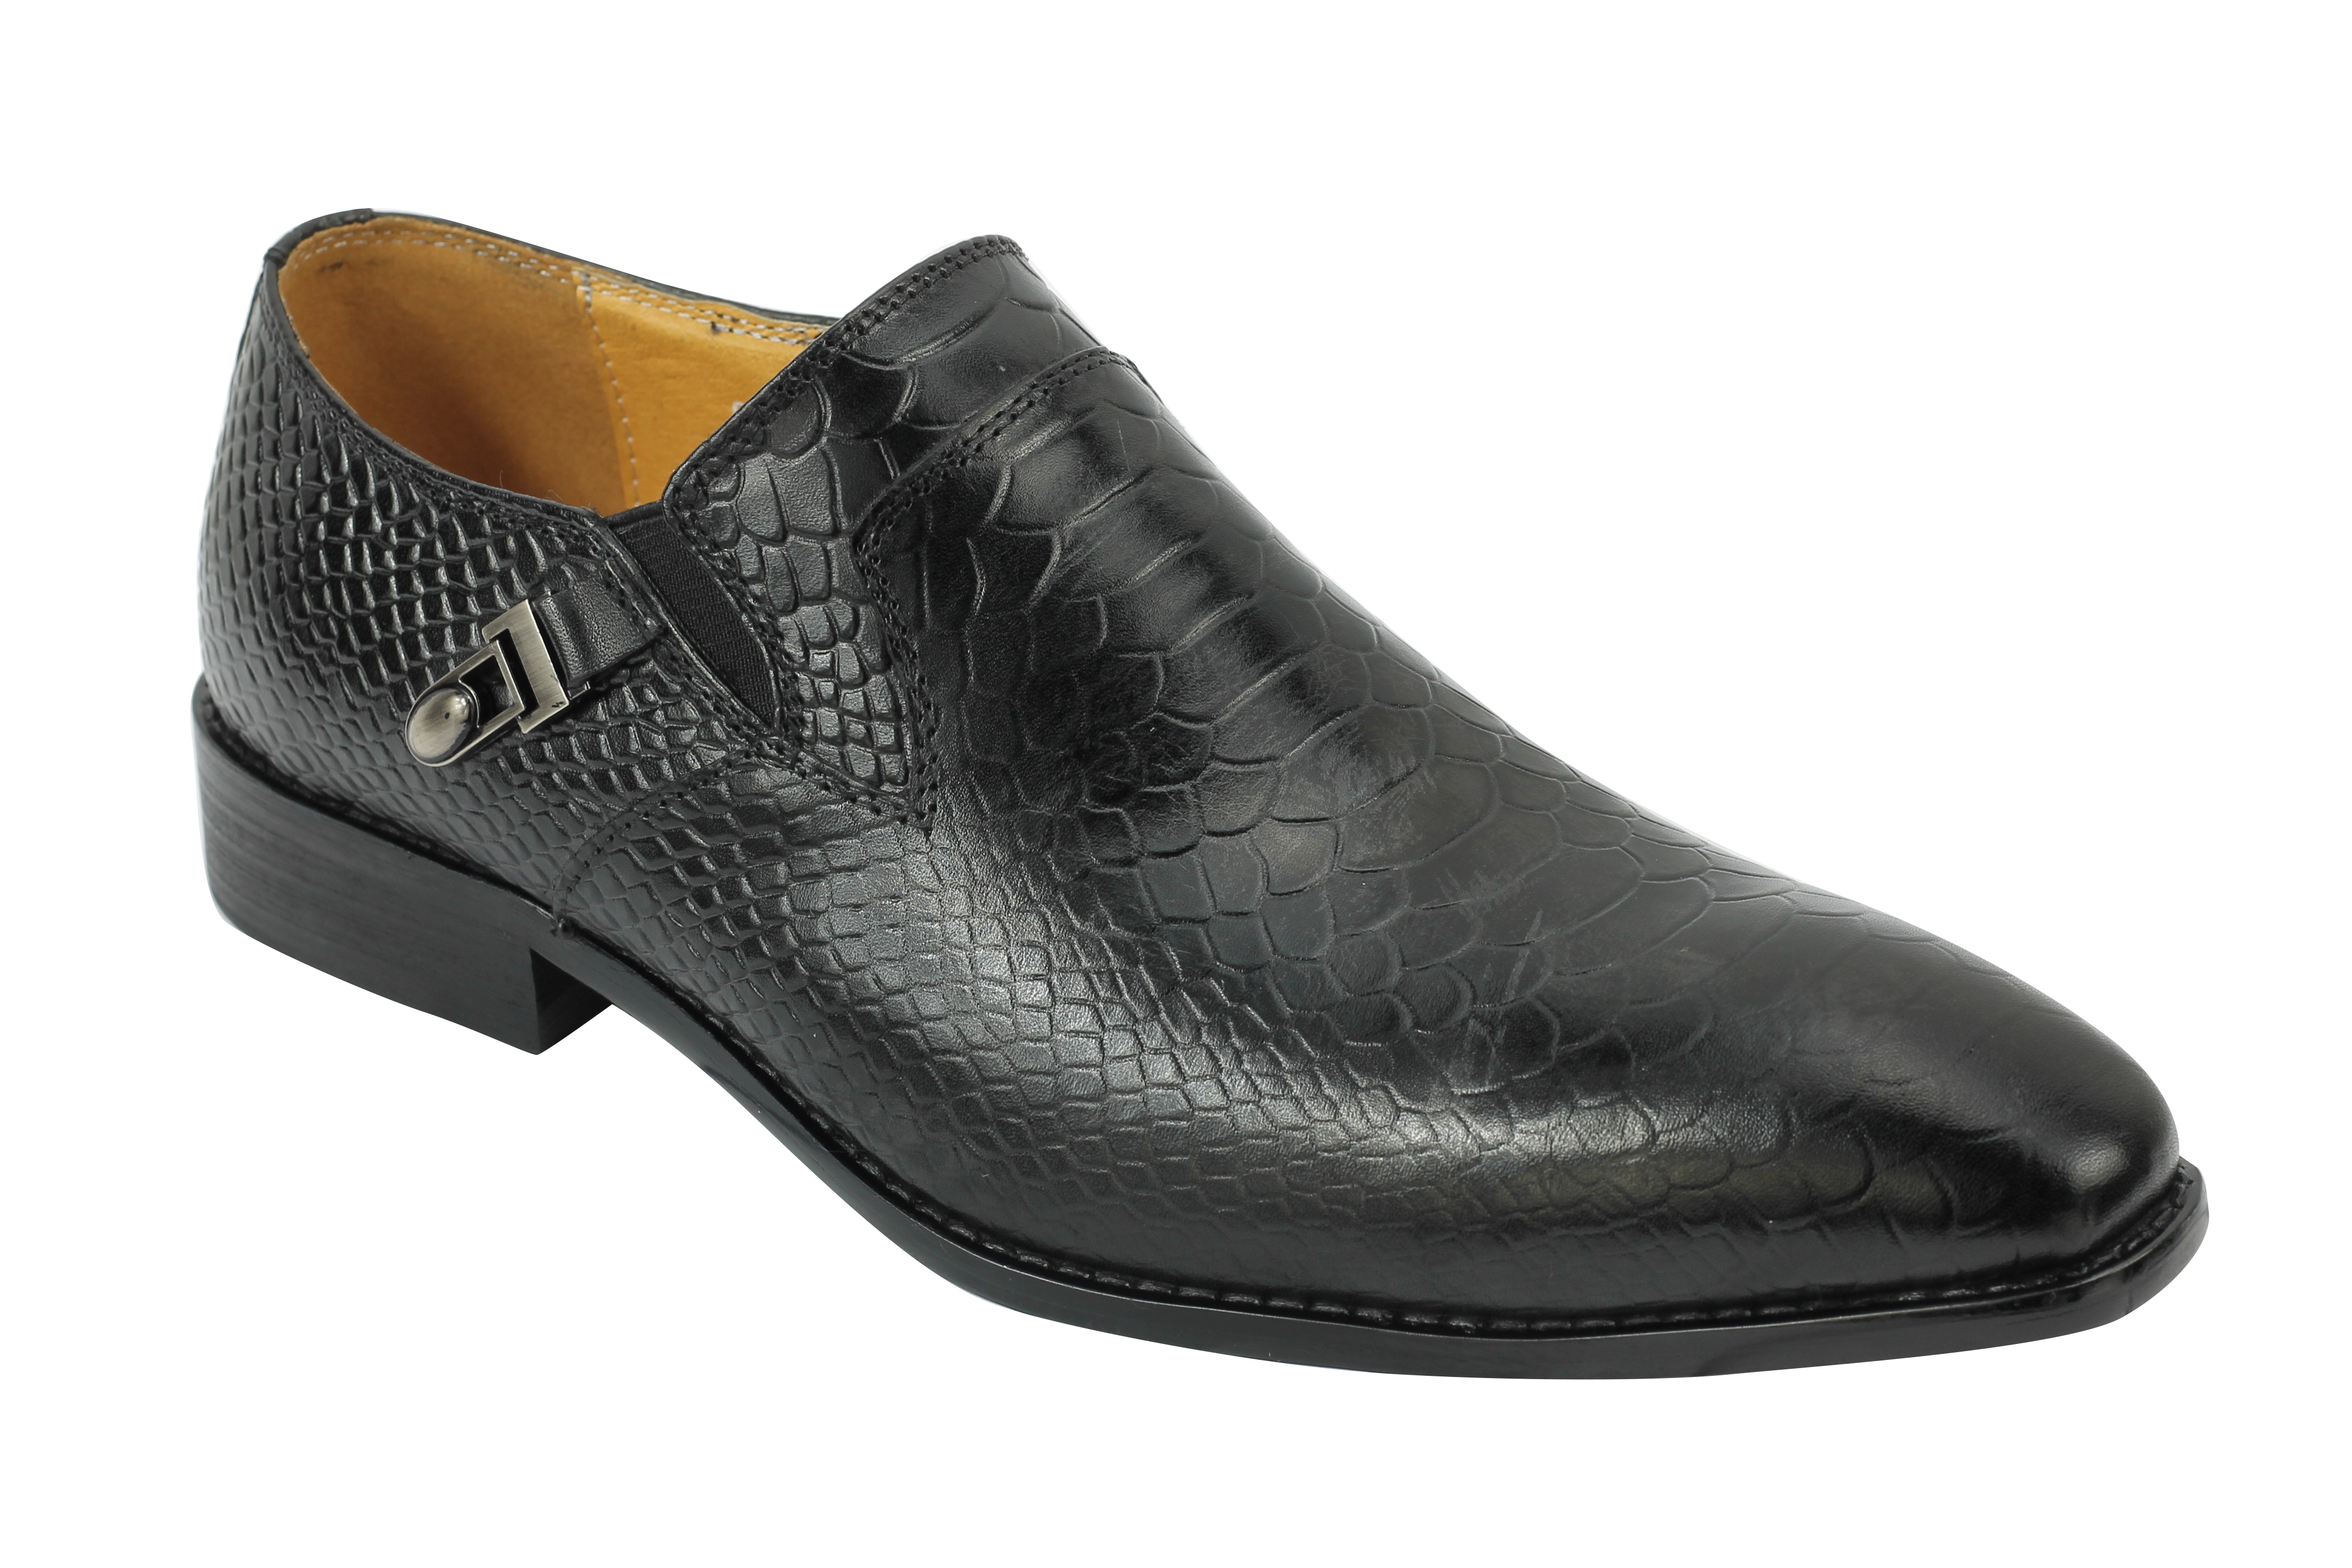 Mens New Real Leather Black Wine Brown Snakeskin Look Vintage Loafers MOD Shoes